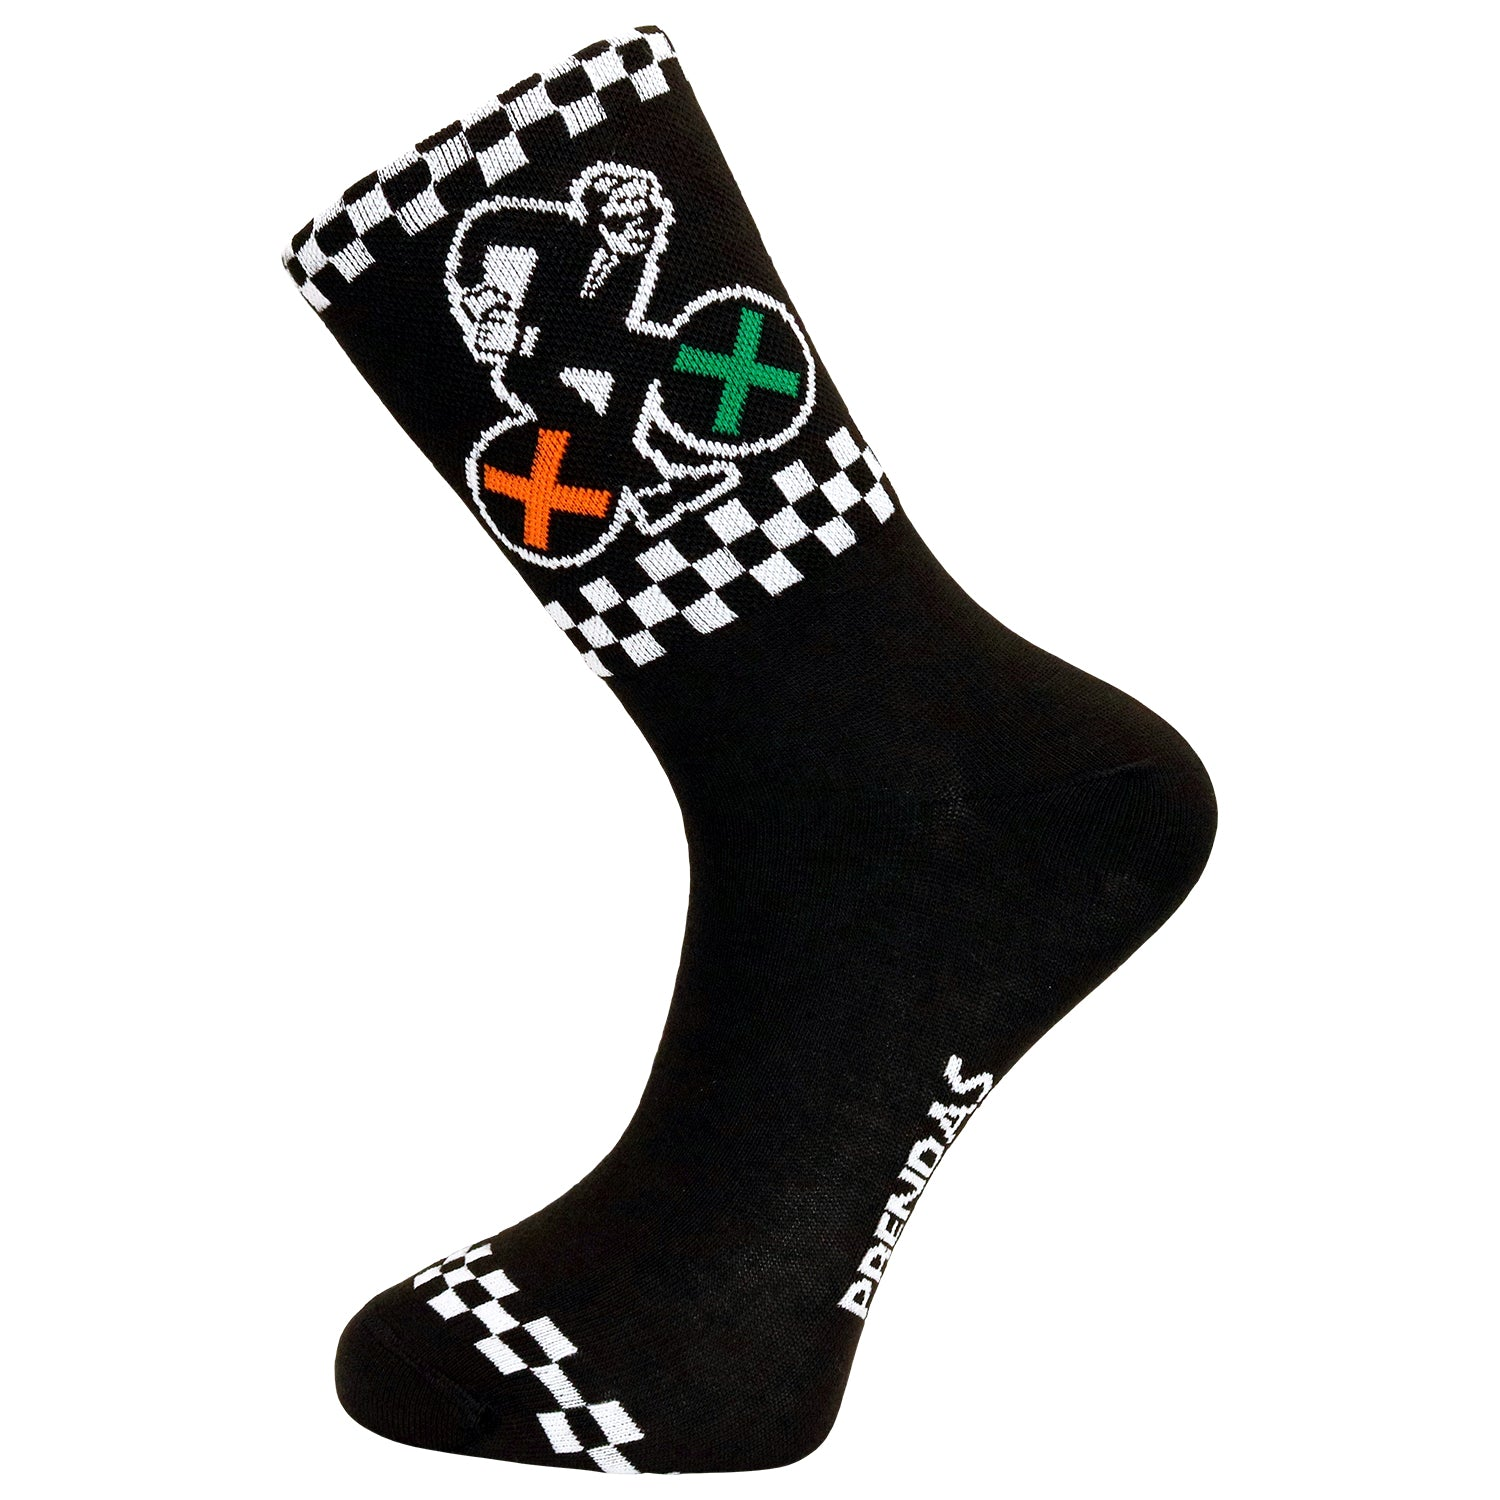 Prendas Ciclismo Anniversary Celebration Coolmax Socks